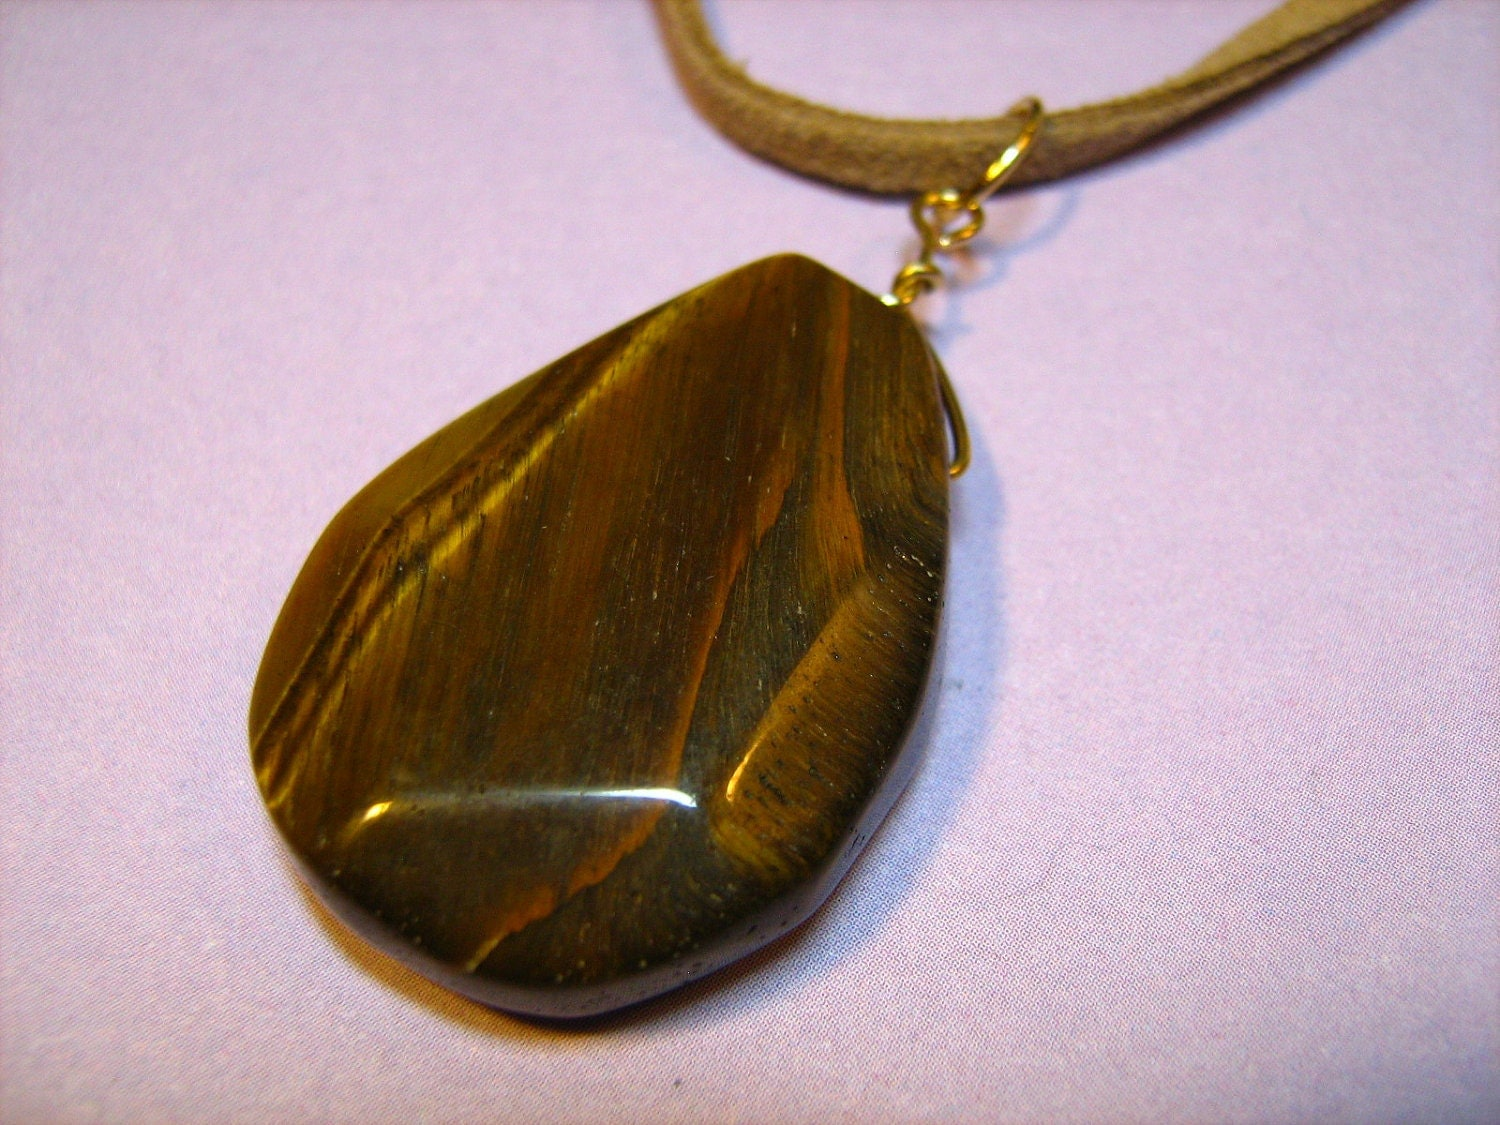 Necklace: Tiger's Eye Stone Pendant with Goldtone Findings and a Tan Suede Cord Necklace for Women